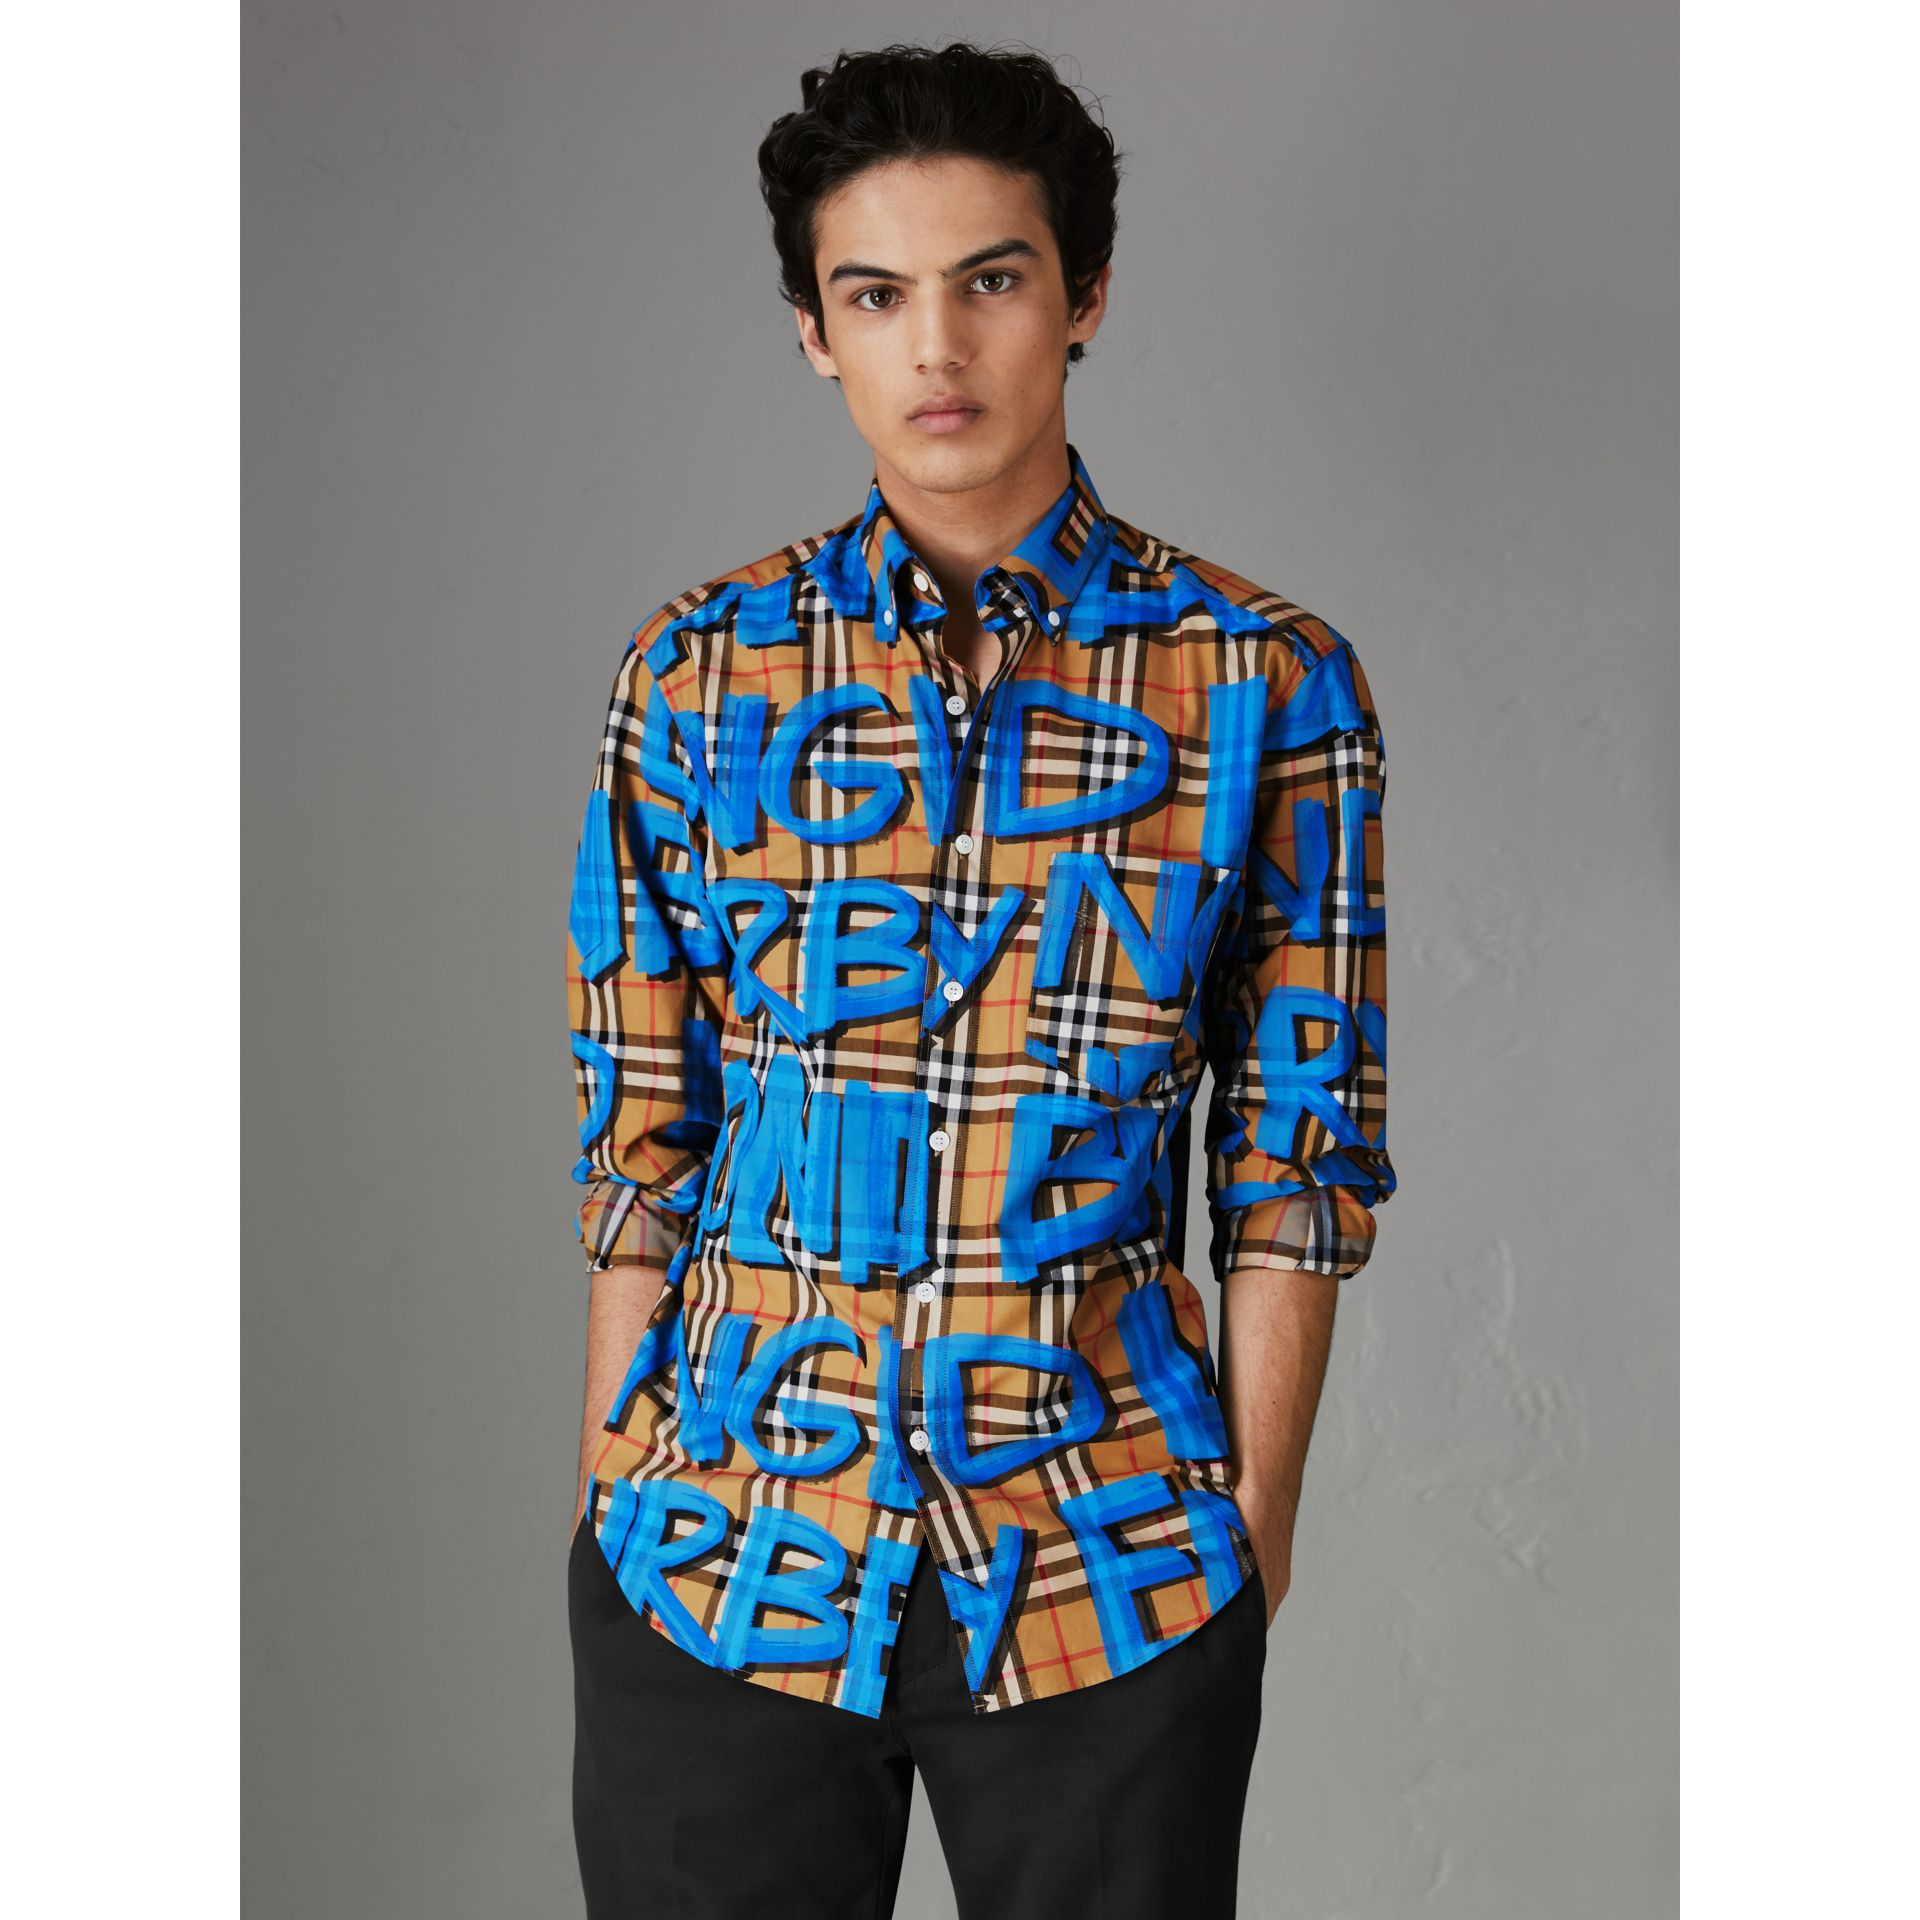 Graffiti Print Vintage Check Shirt in Bright Blue - Men | Burberry Australia - gallery image 4